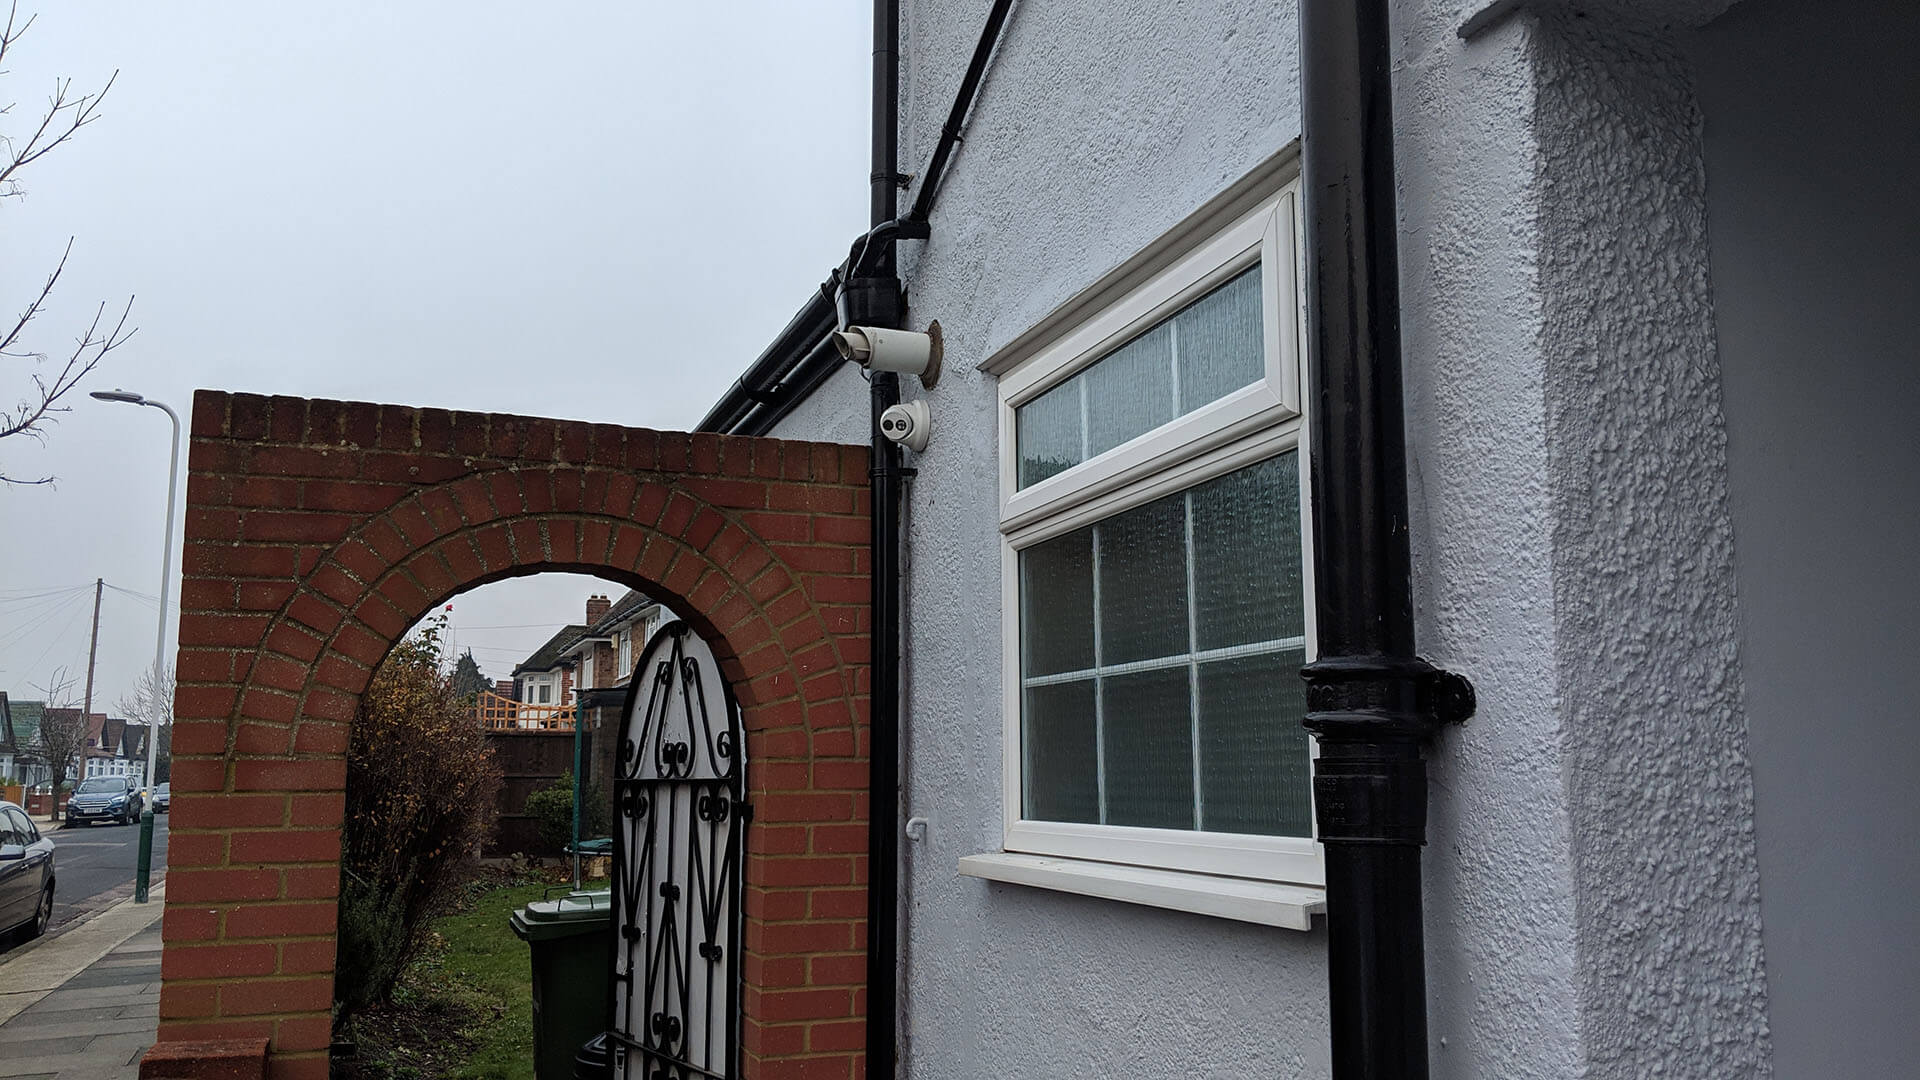 2MP CCTV Installation in Ardleigh Green